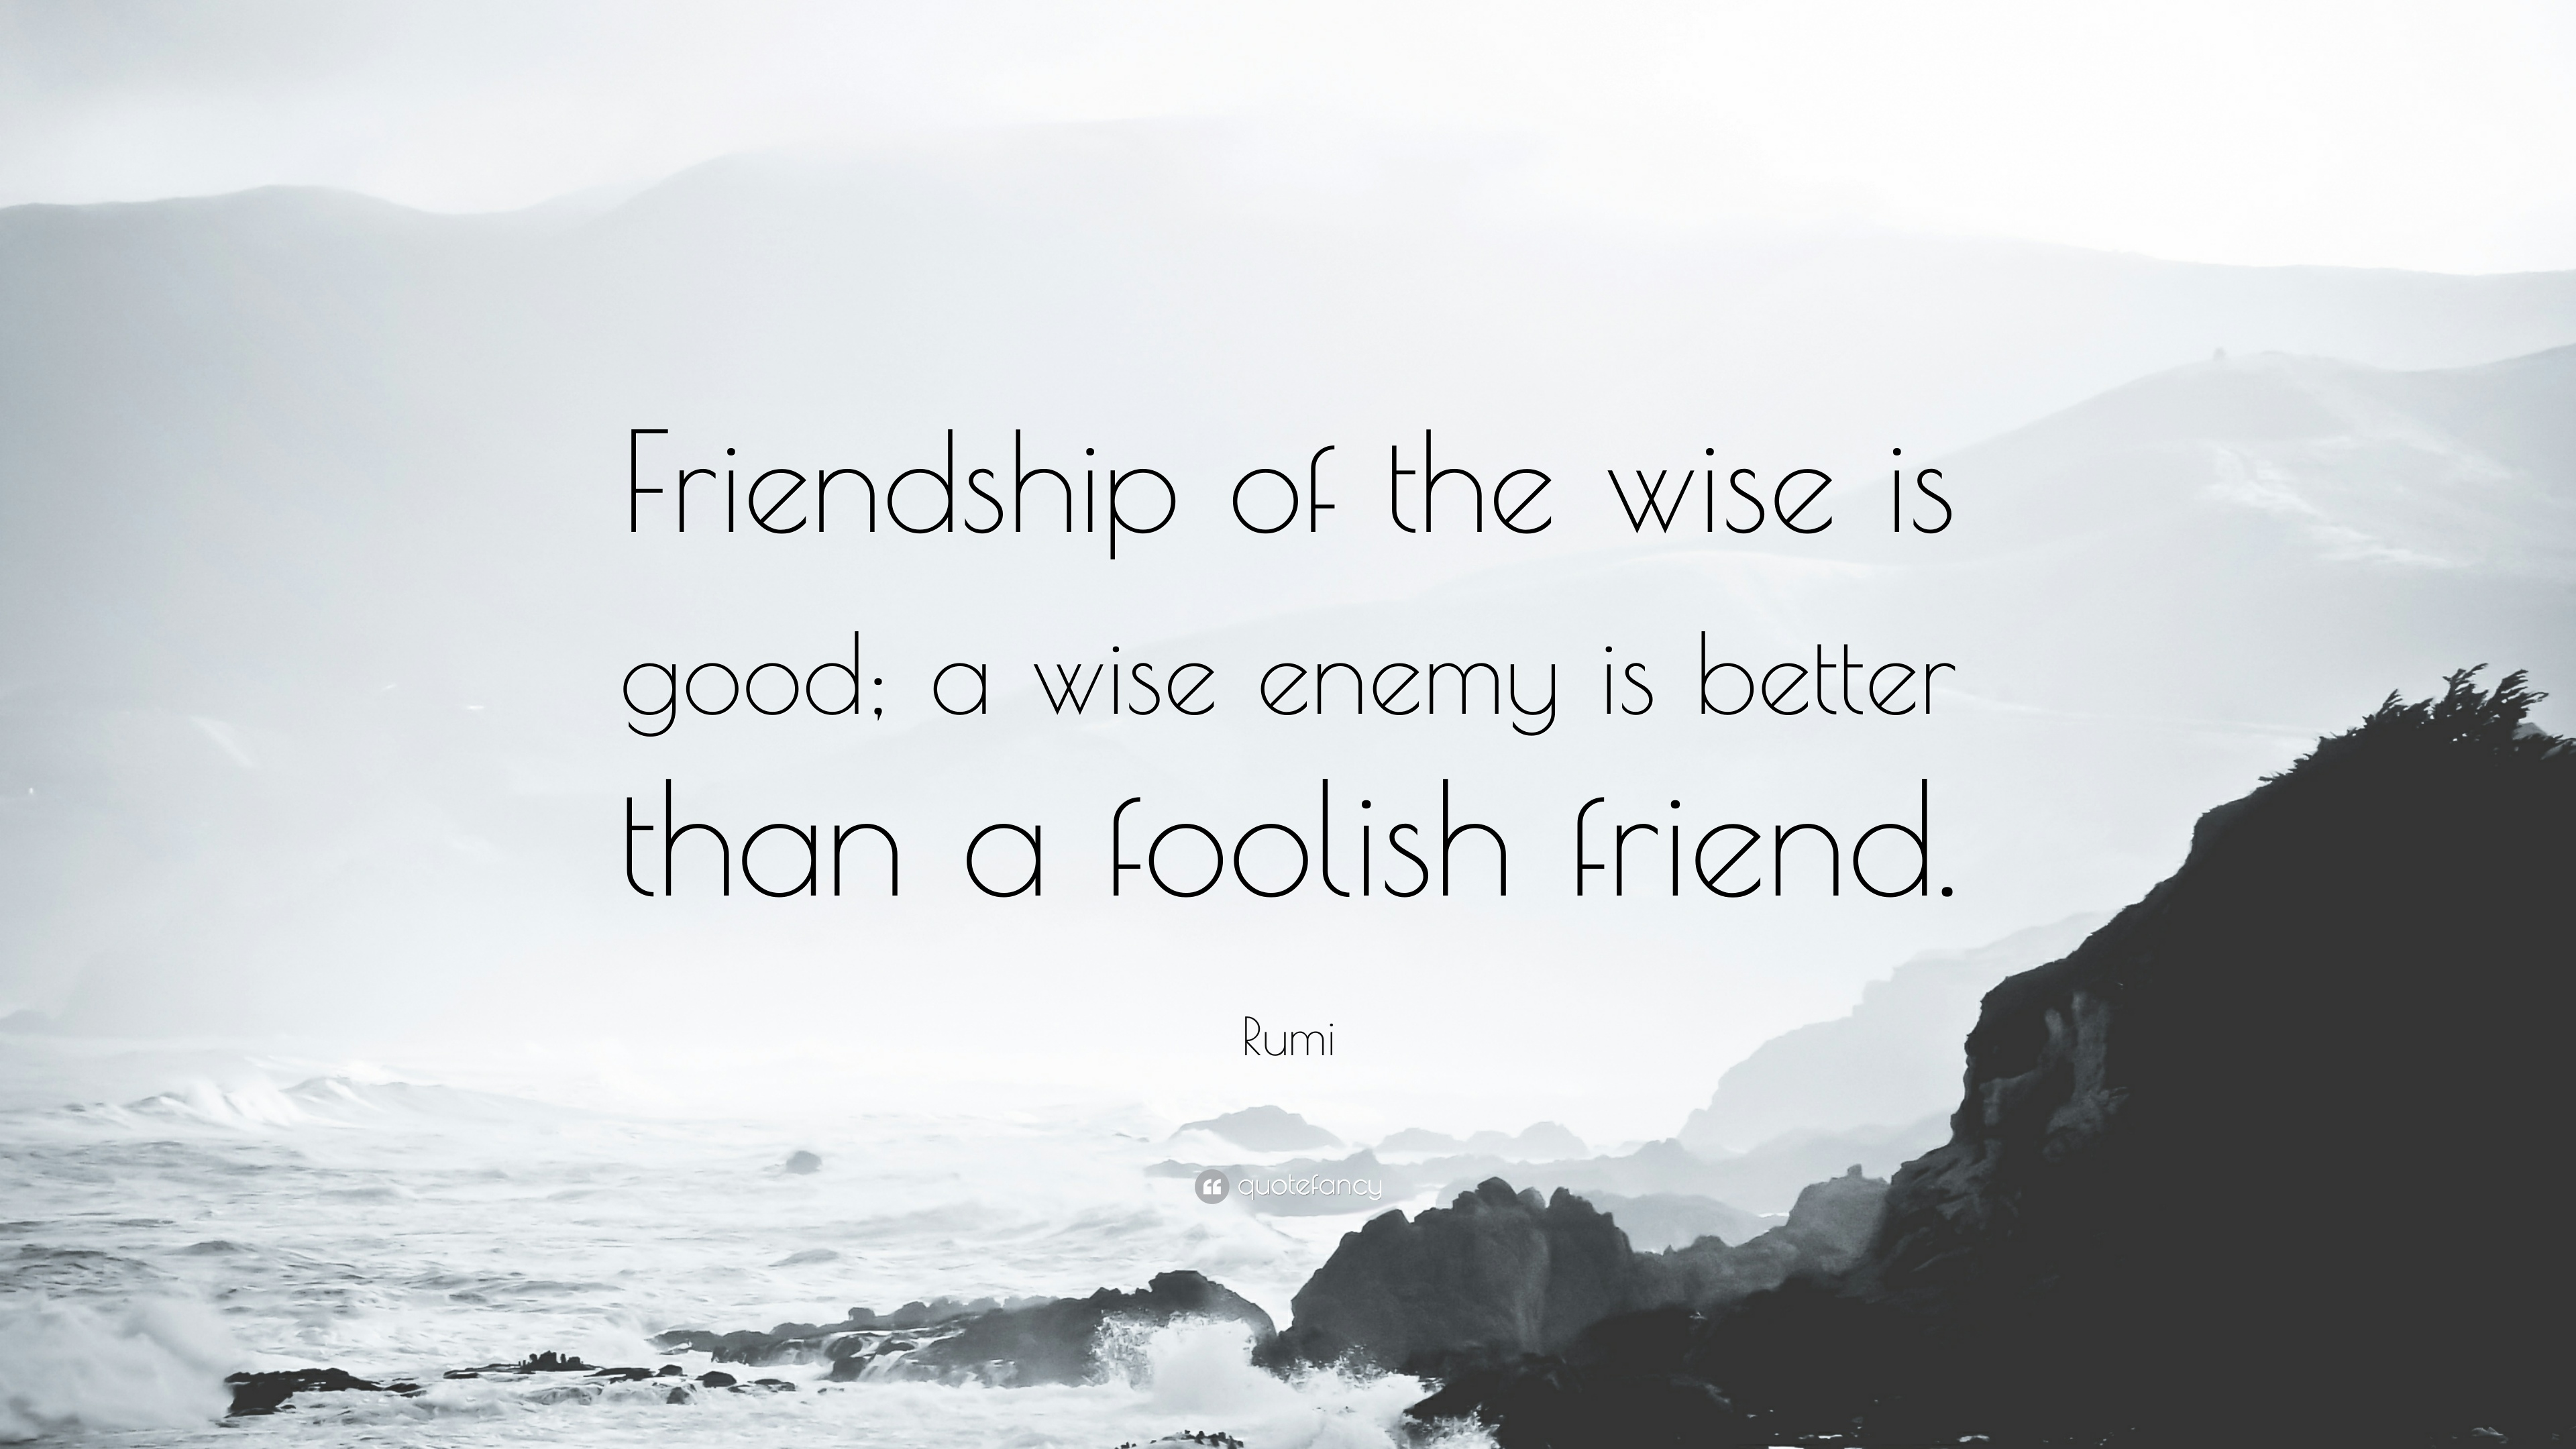 Rumi Quotes About Friendship Wise Sayings About Good Friends Rumi Quote Friendship Of The Wise